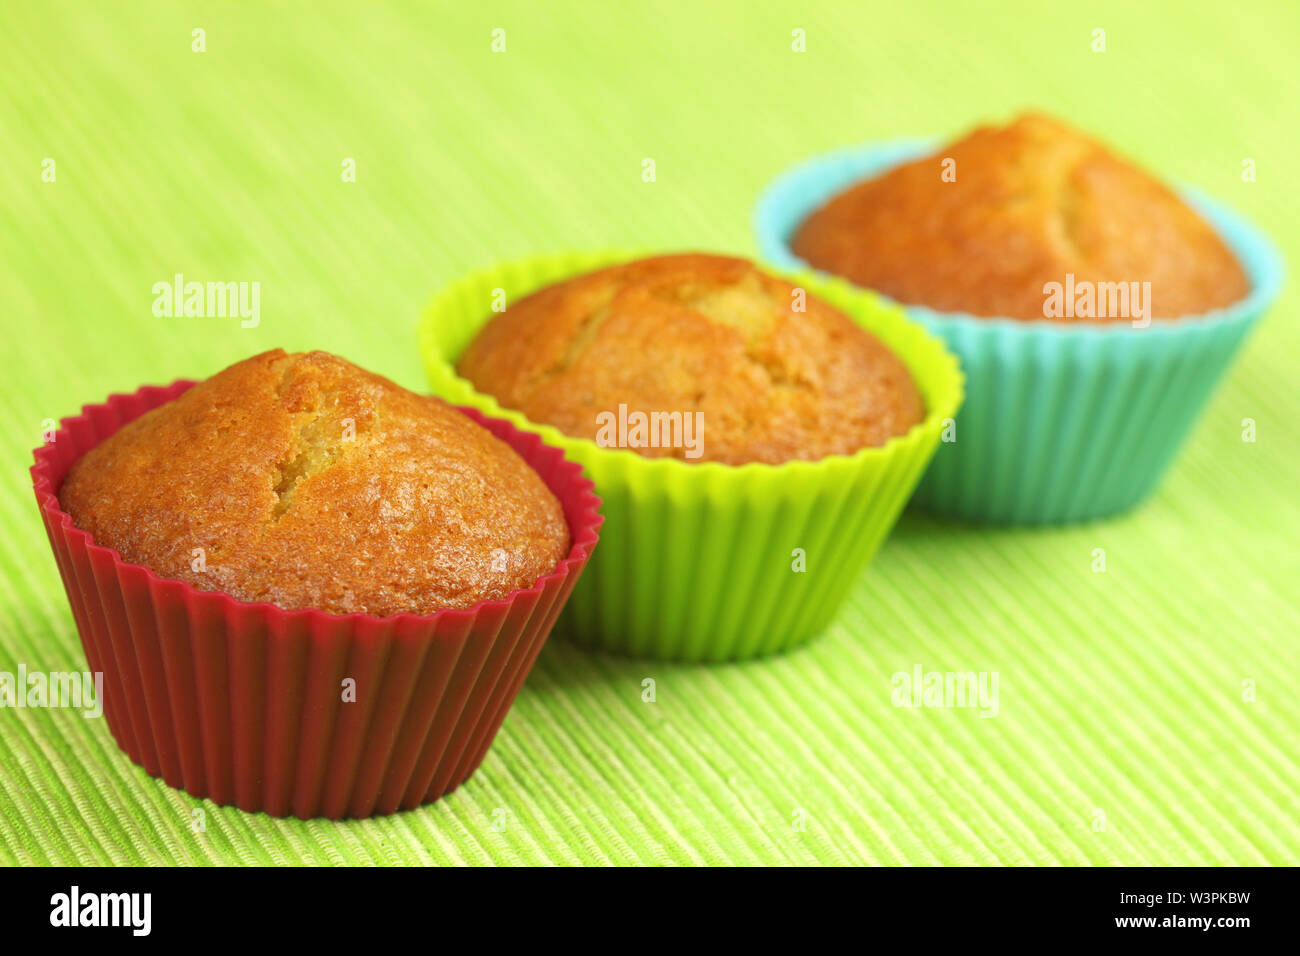 Three lemon cupcakes in colorful silicone moulds on green background - Stock Image